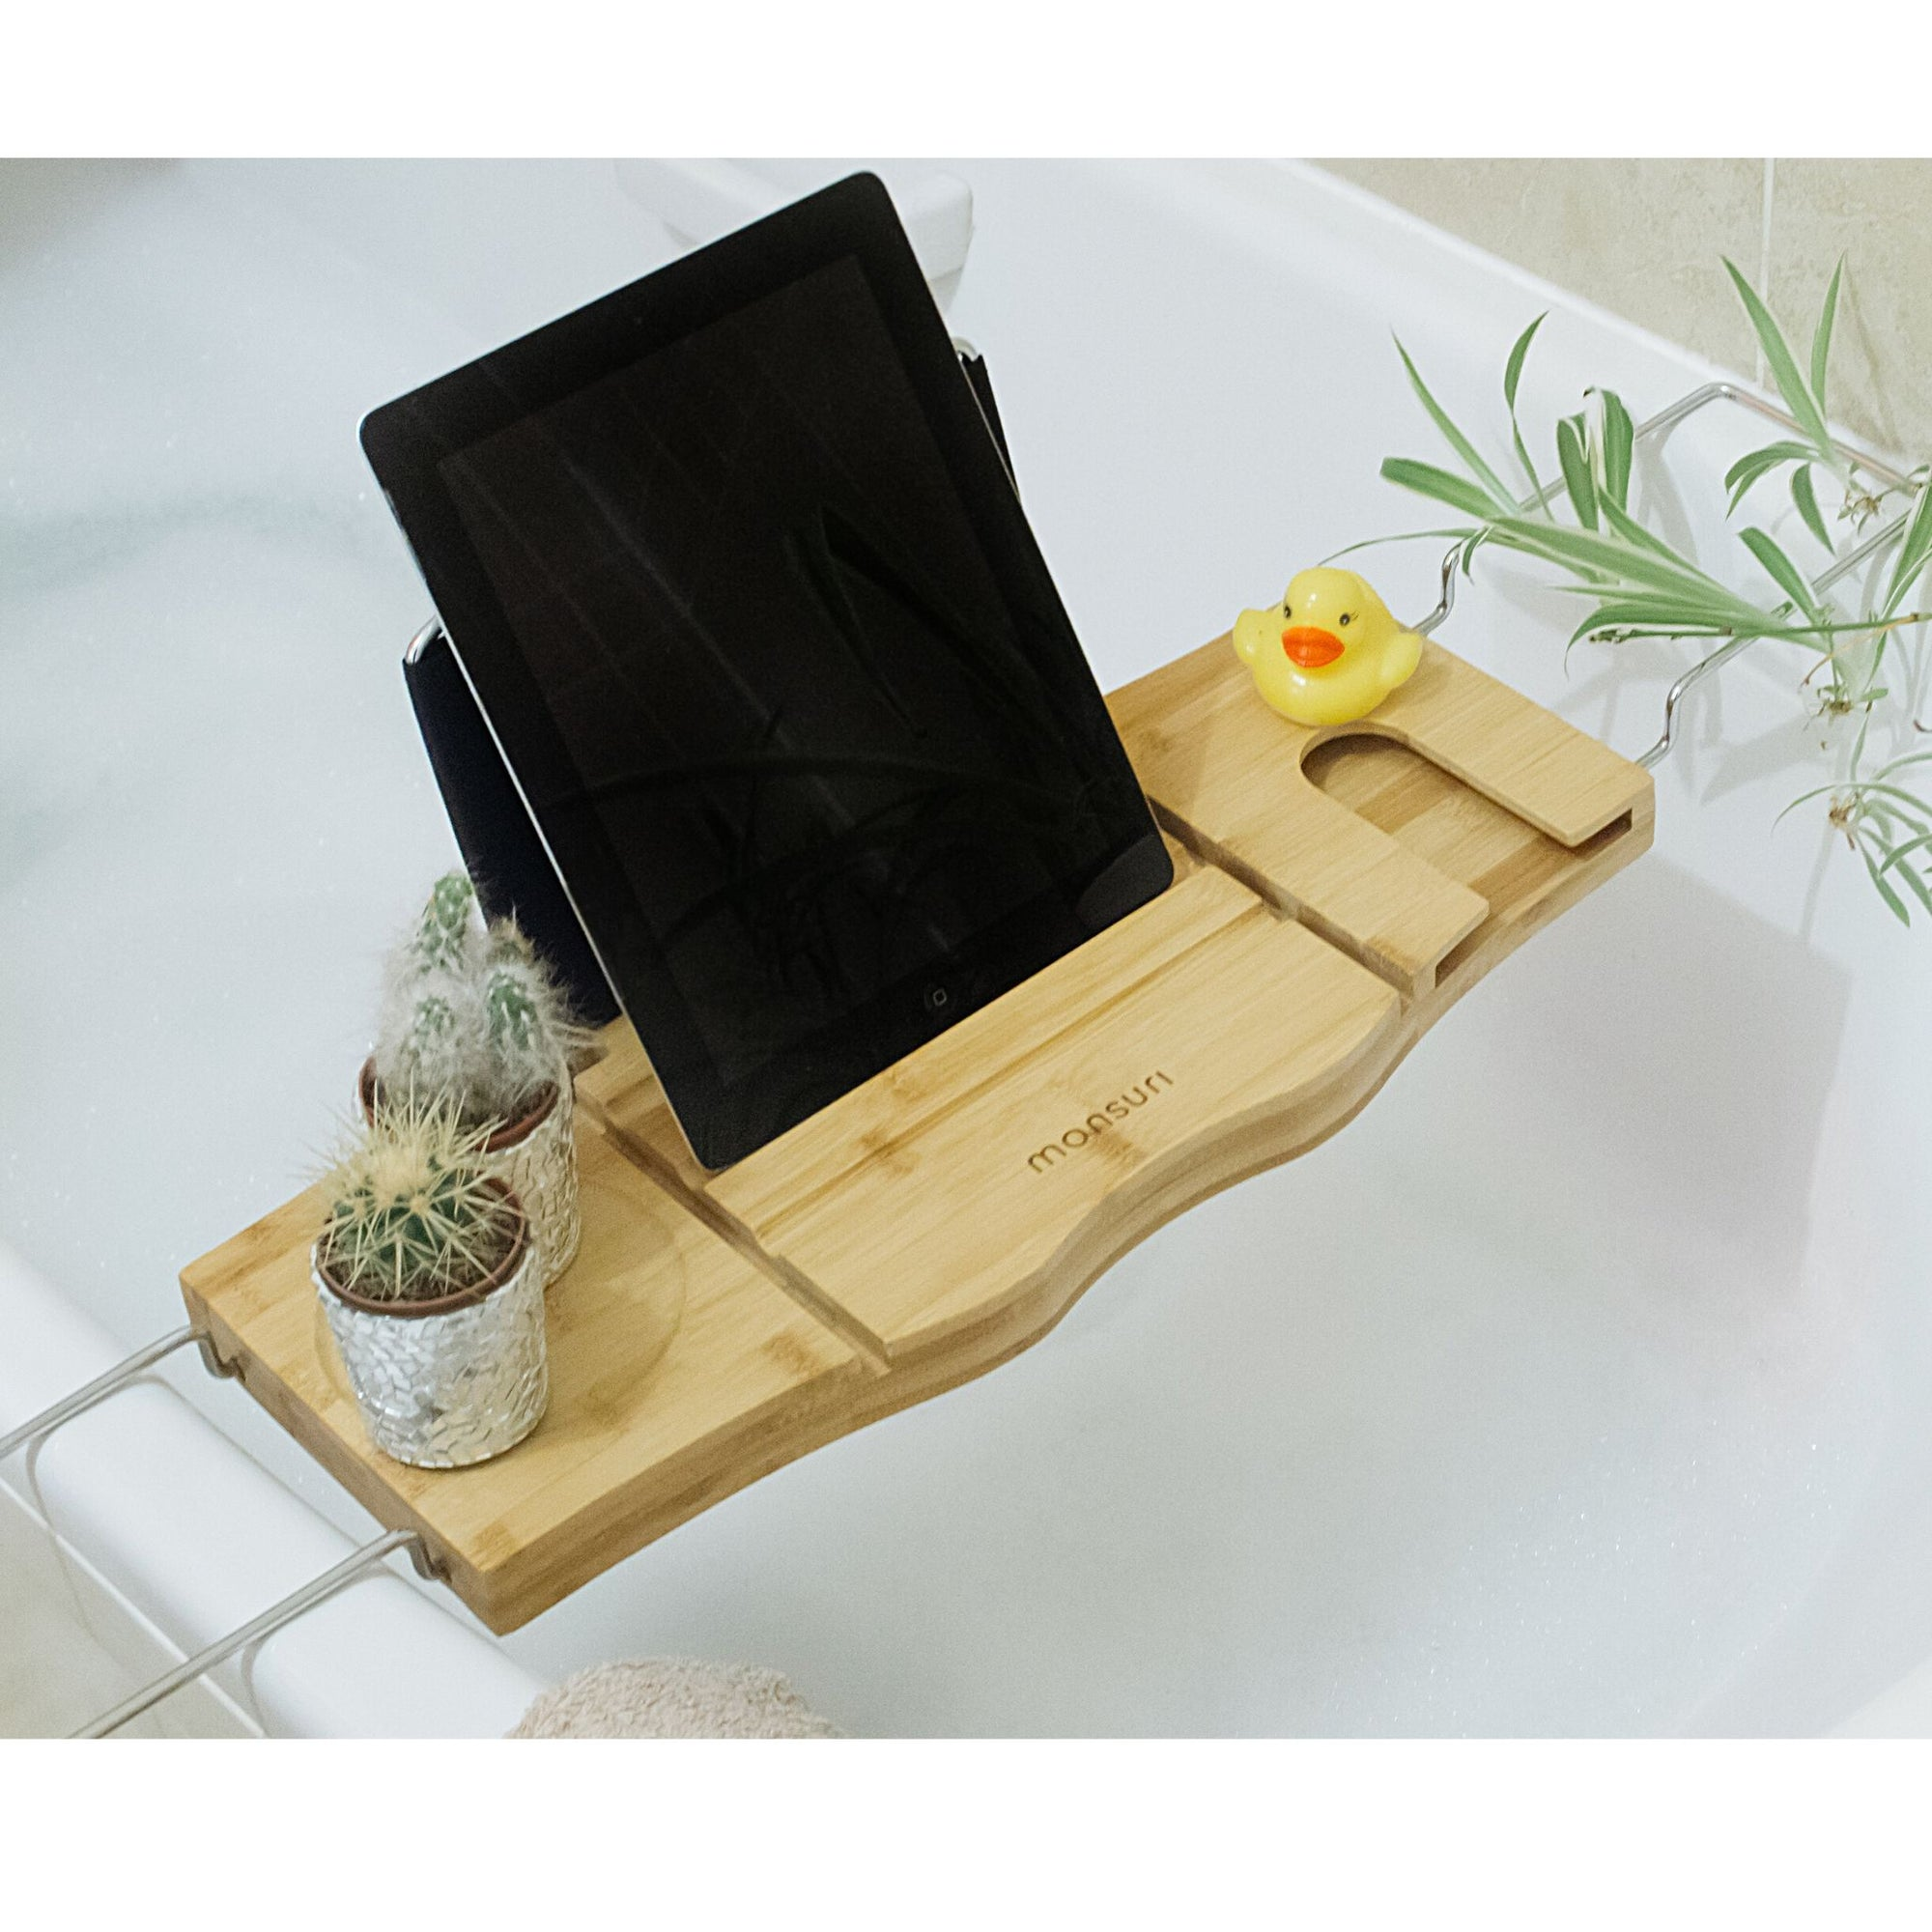 Bamboo bath caddy for tub with book, tablet and wine holder